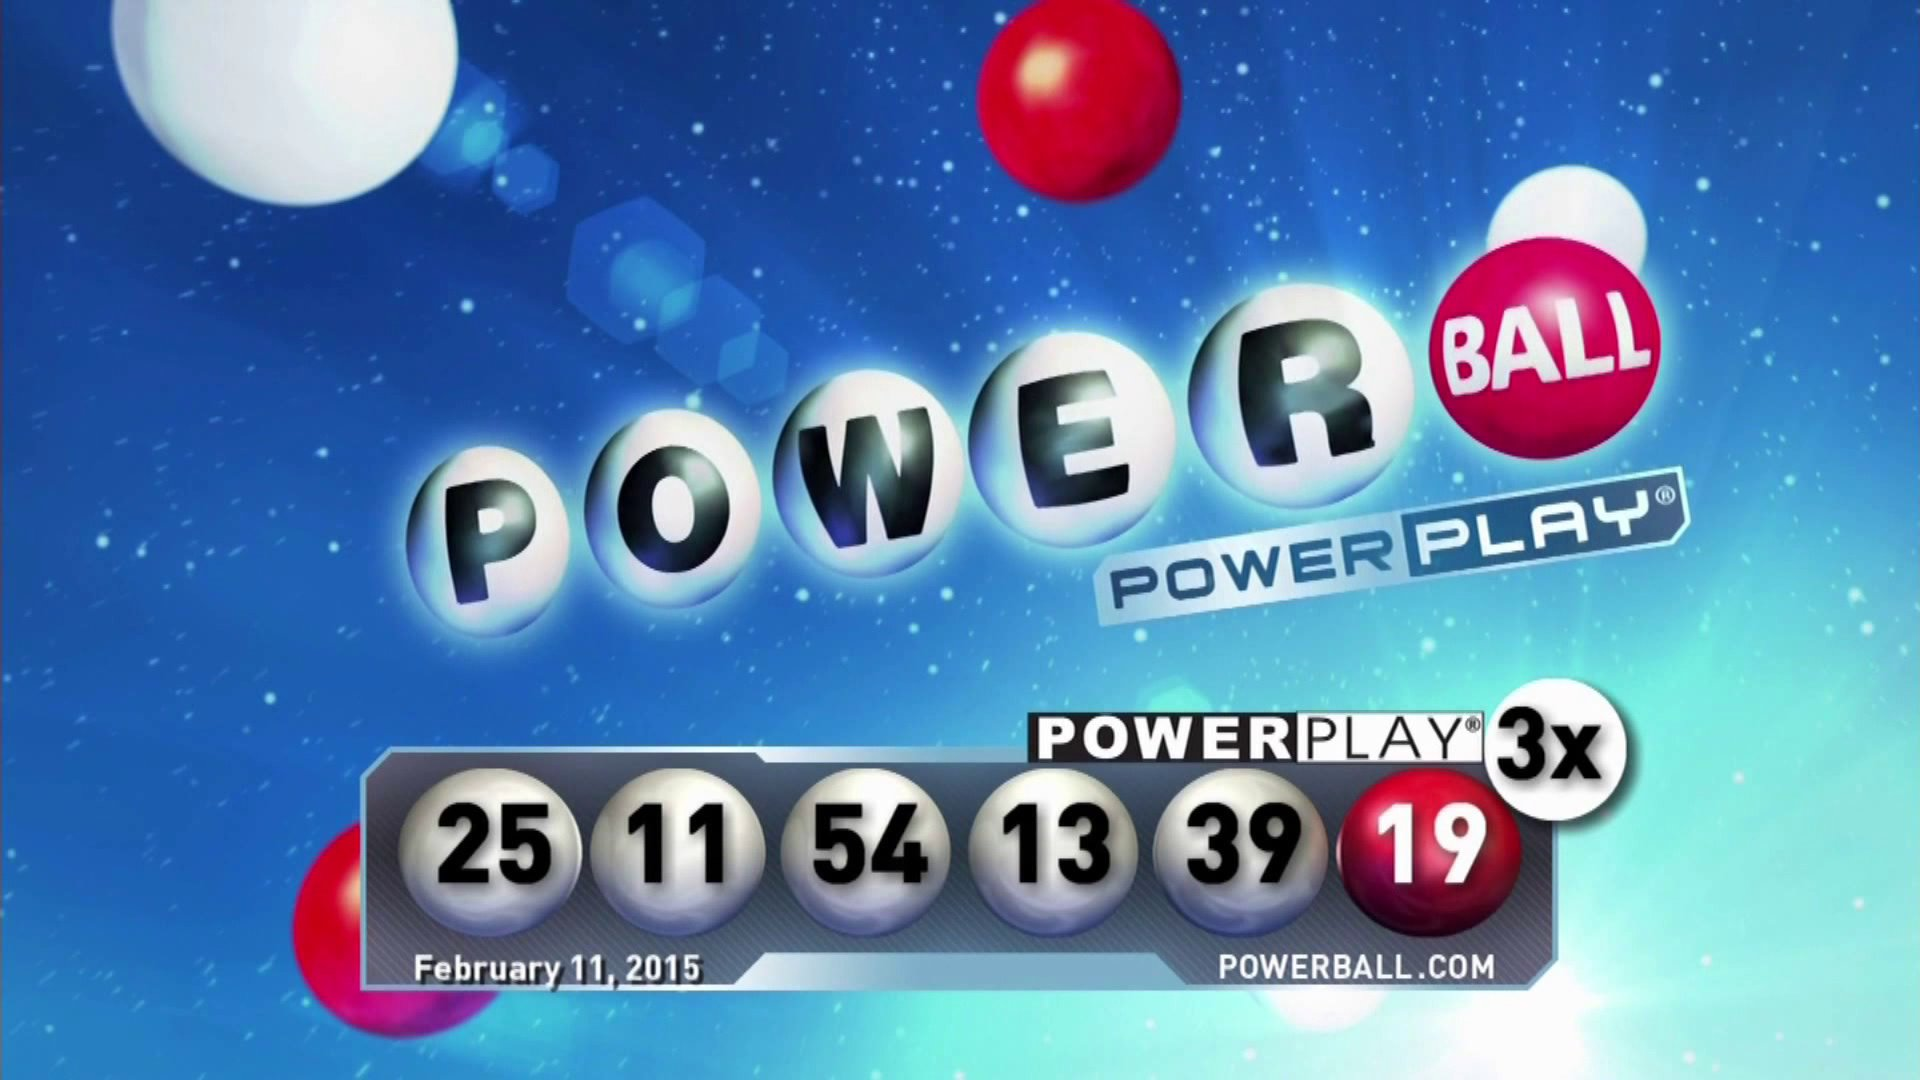 fl powerball drawing time photo - 1